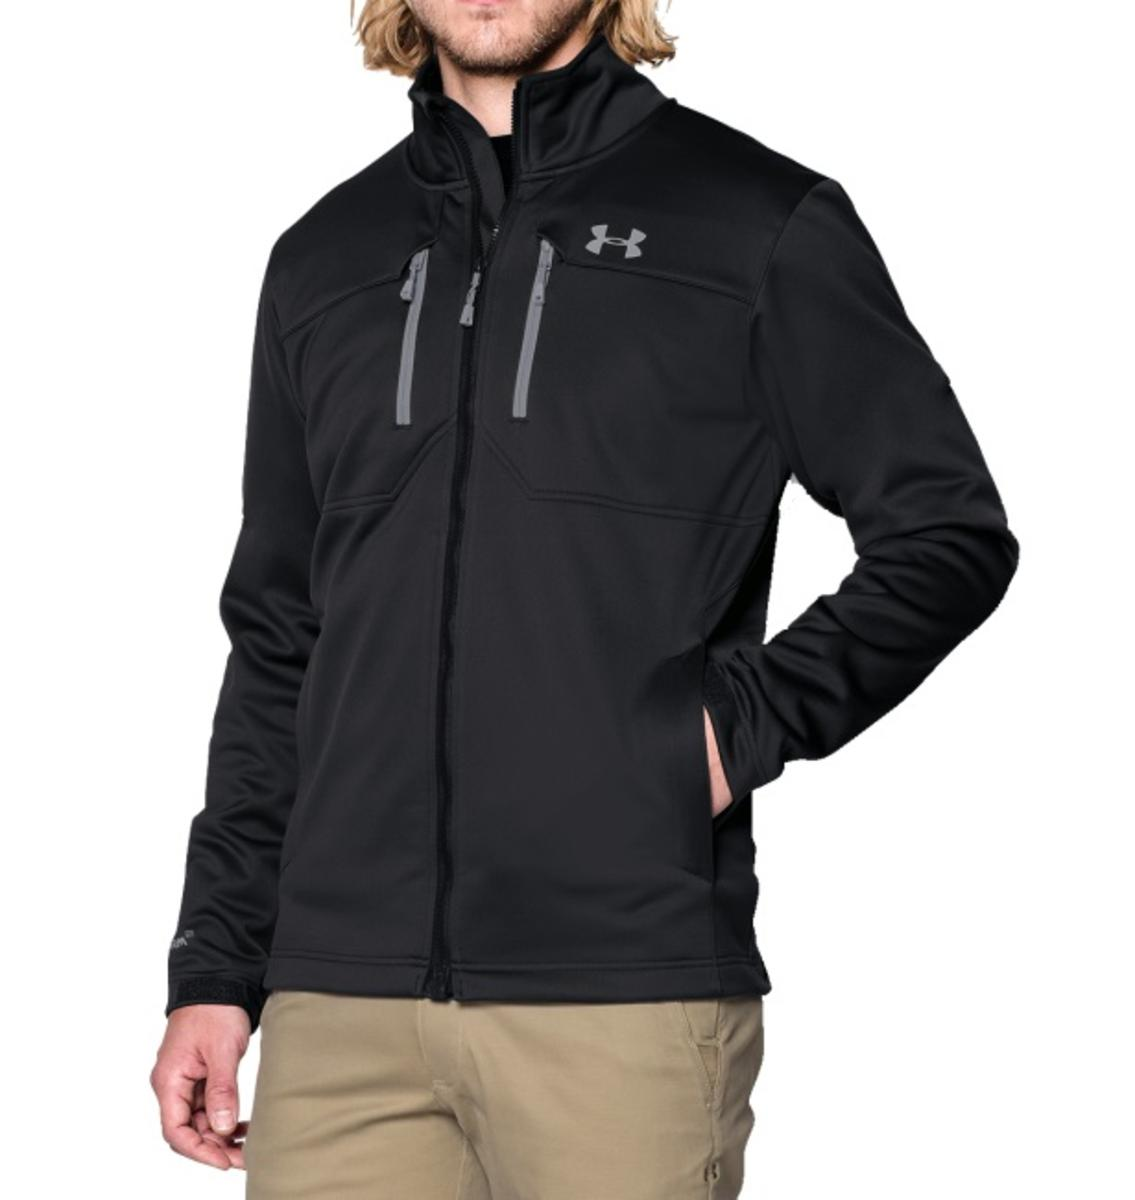 2155adbe00 Under Armour Men s UA Storm ColdGear Infrared Softershell Jacket - The  Warming Store